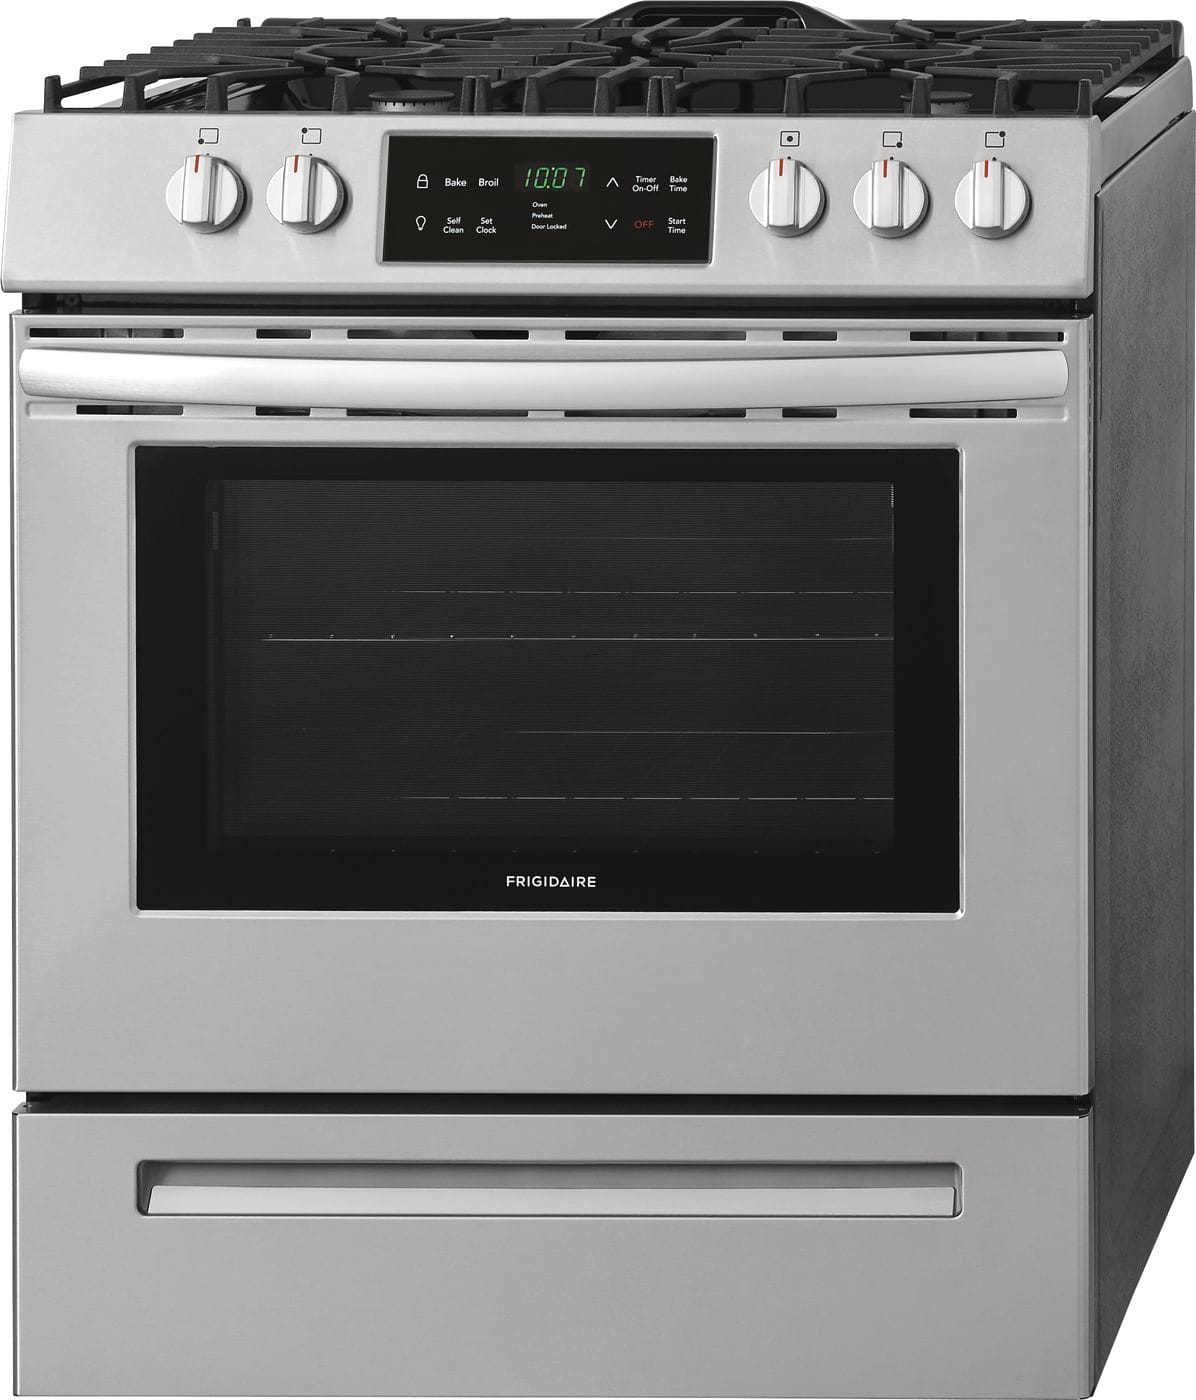 "Frigidaire 30"" Front Control Freestanding Gas Range"